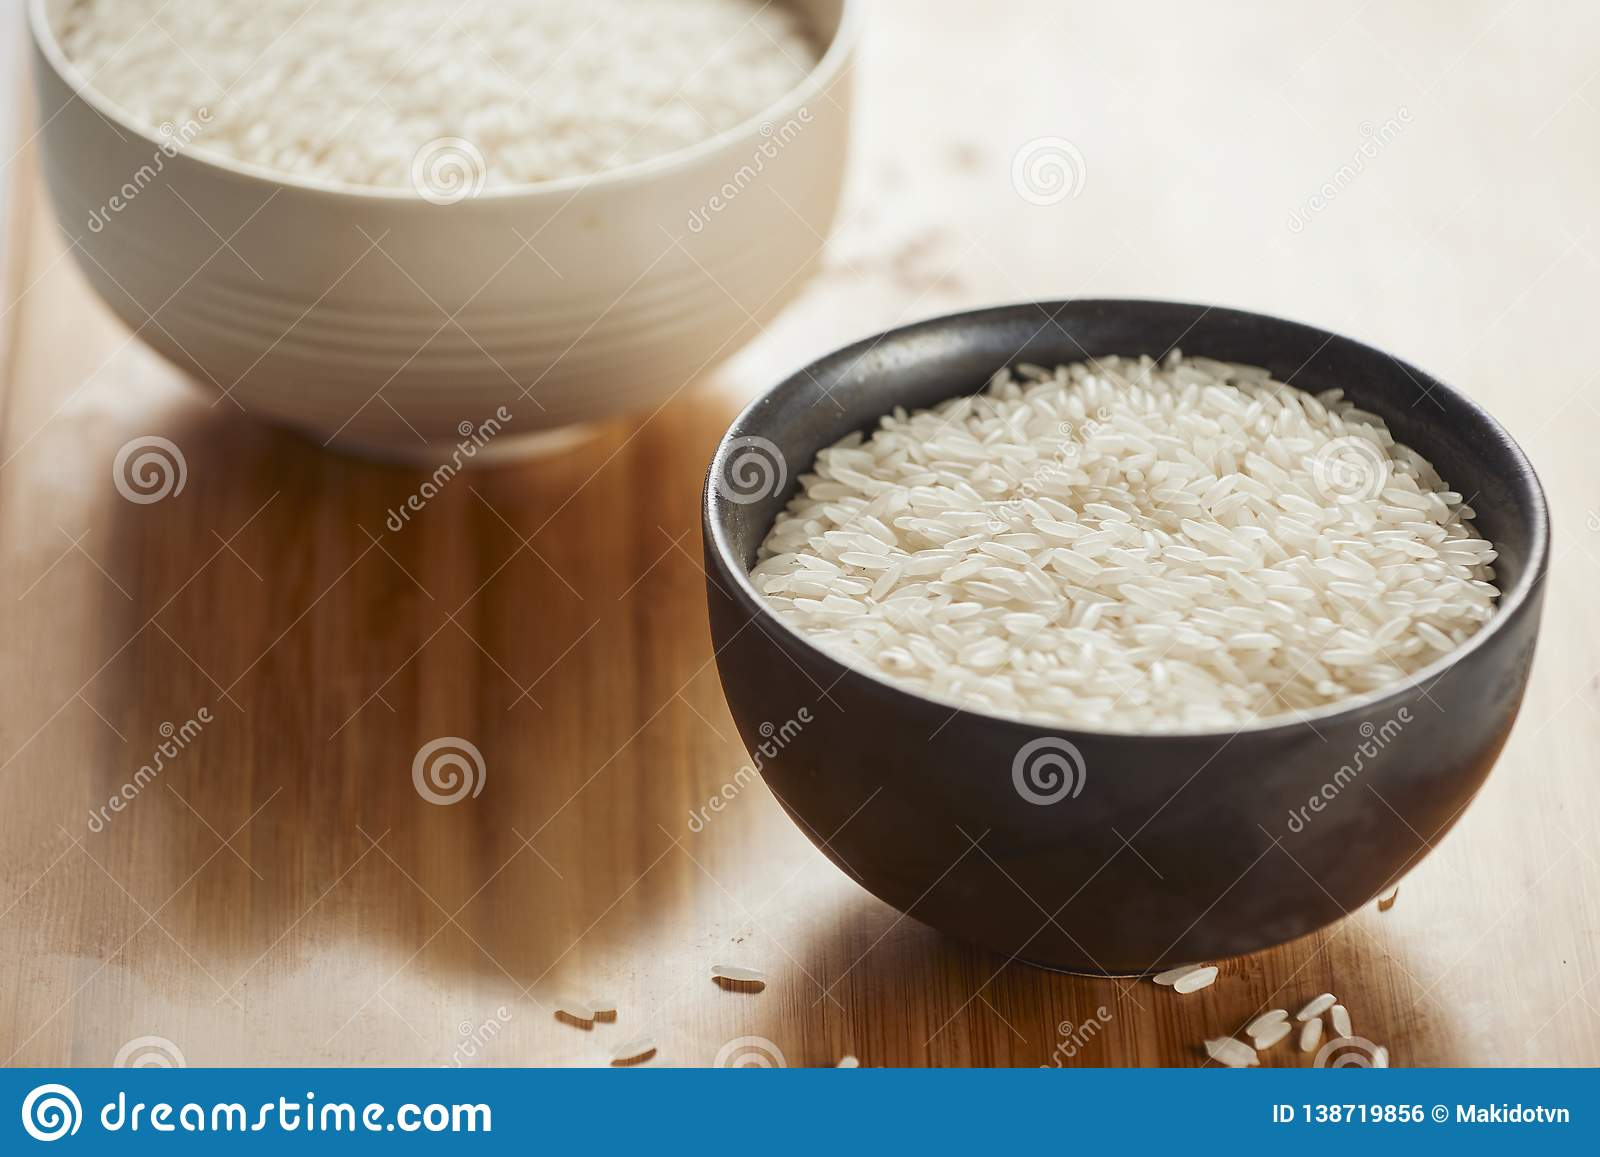 White rice in bowl on table. Concept asian food